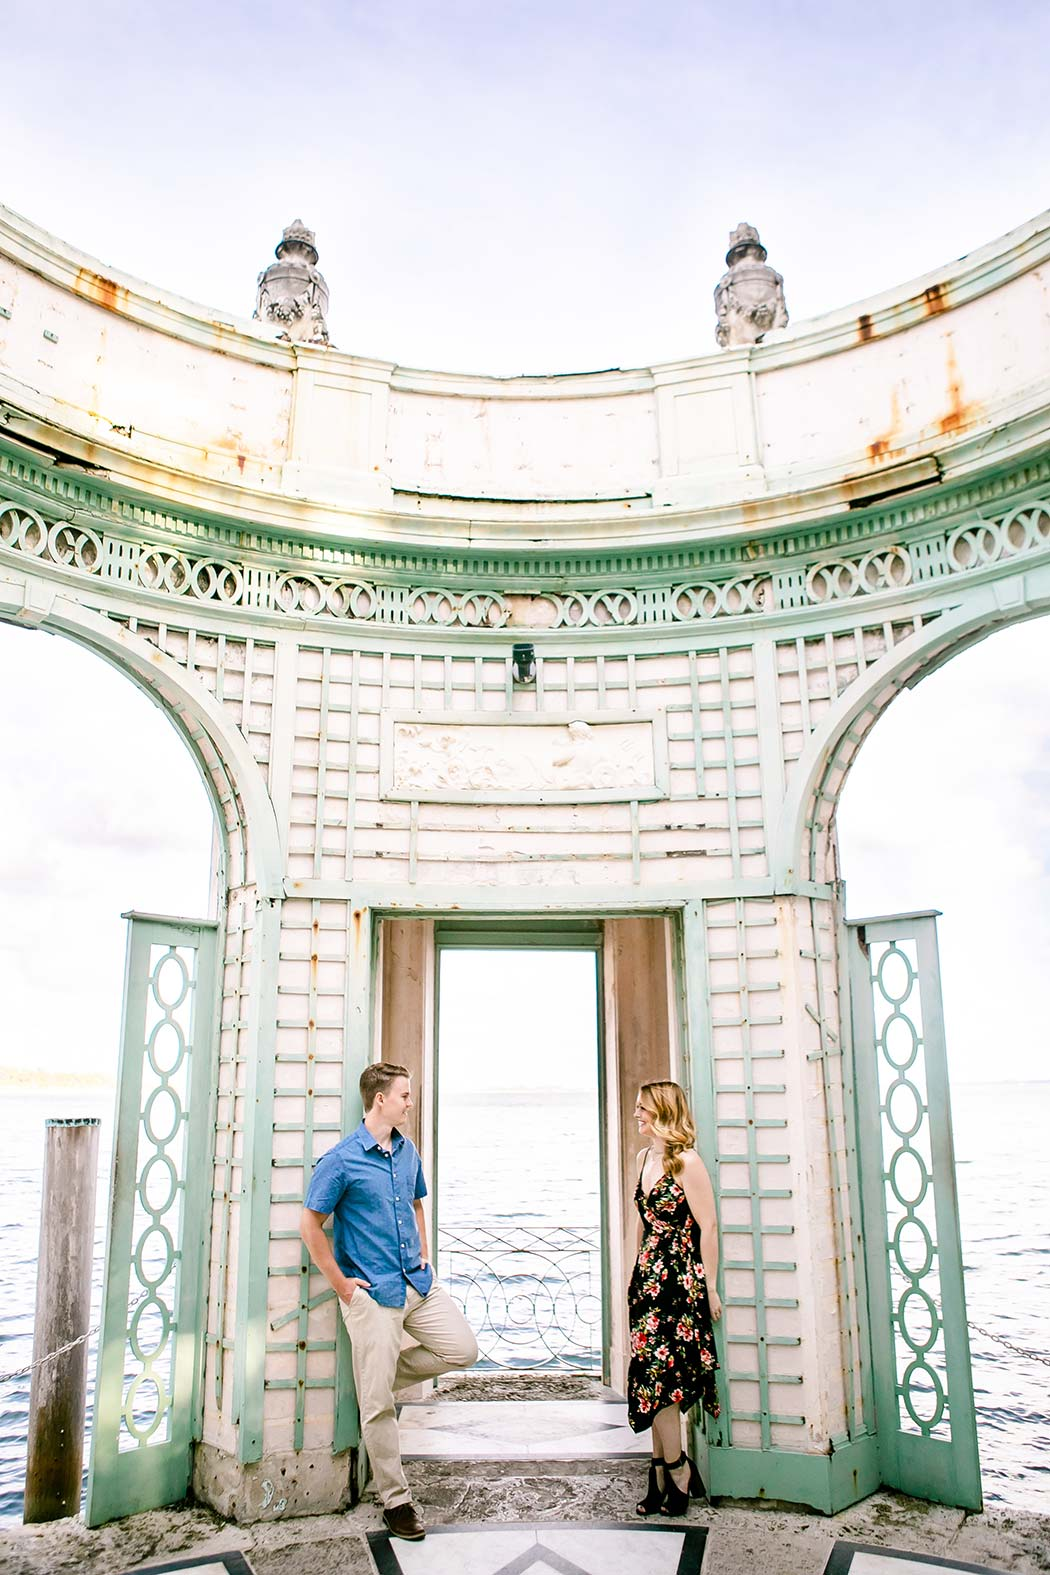 engagement photoshoot vizcaya miami | couple pose in tea house at vizcaya | vizcaya surprise wedding proposal photoshoot